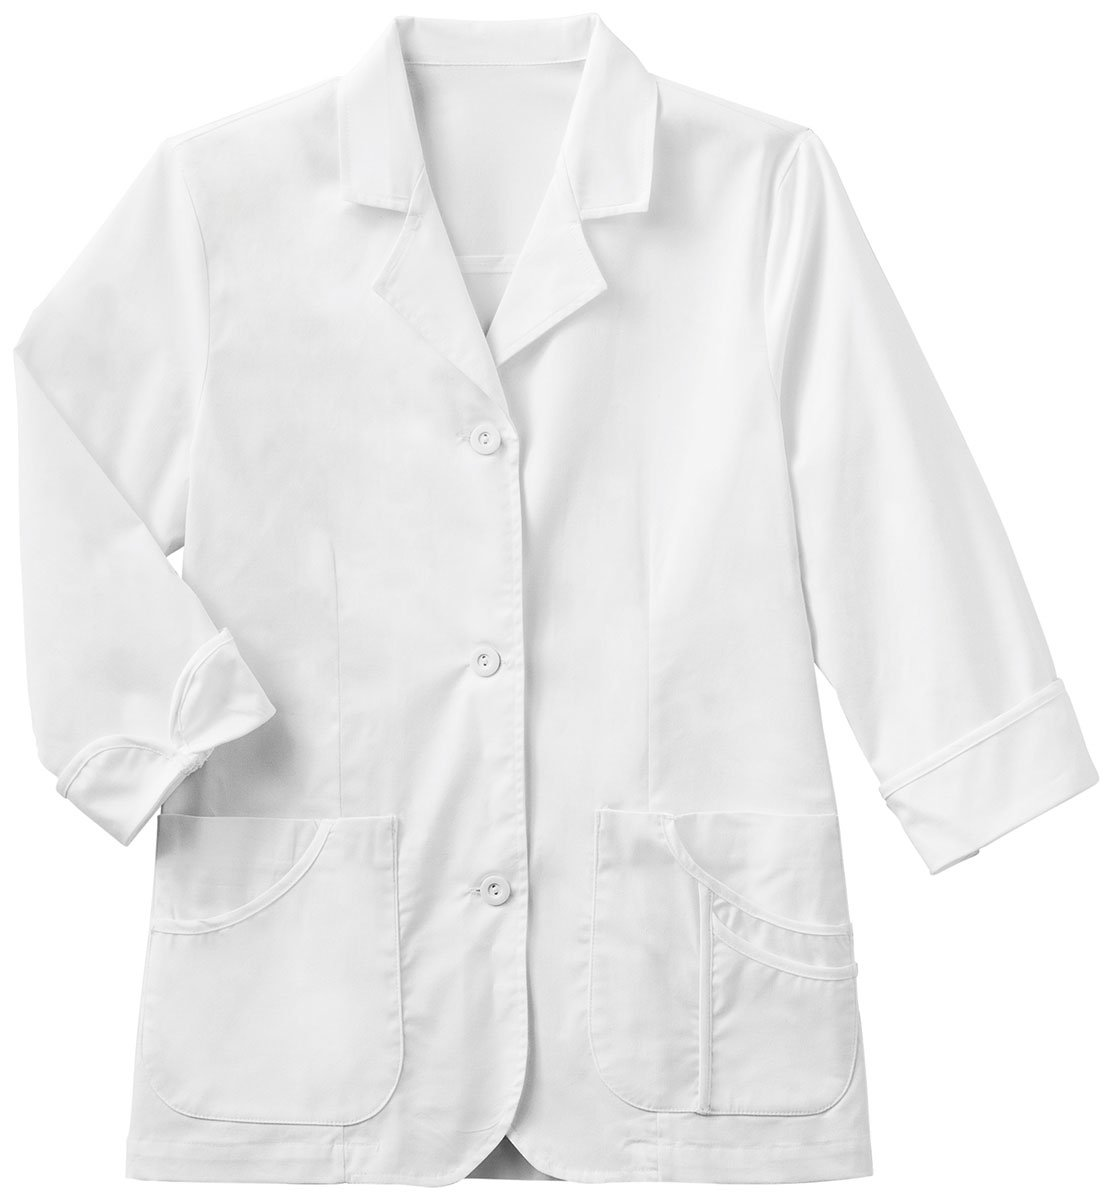 META Labwear Women's ¾ Sleeve 29''; Lab Coat White